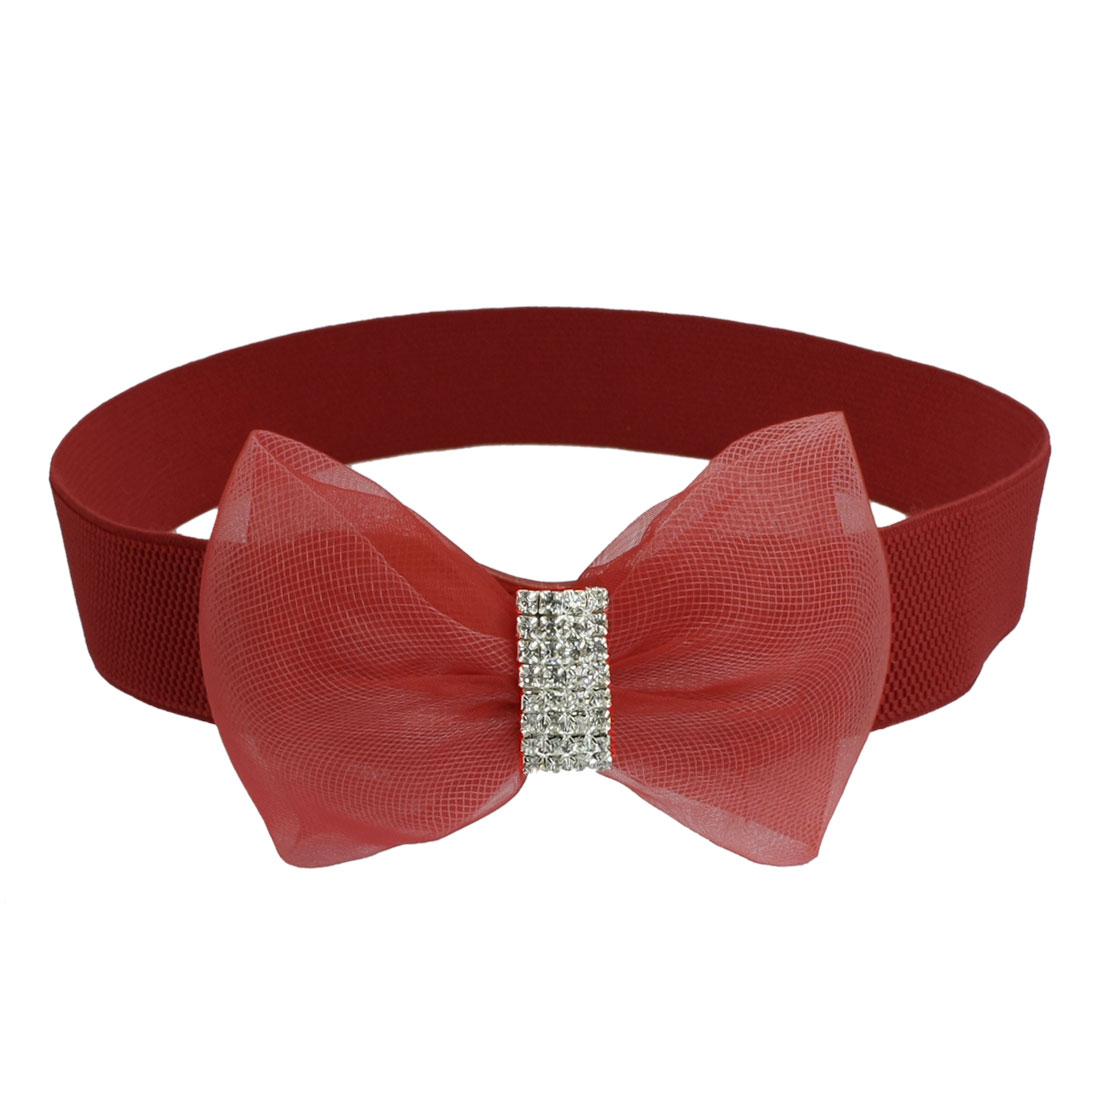 Lady Rhinestone Inlaid Gauze Bowknot Decor Elastic Cinch Waist Belt Red